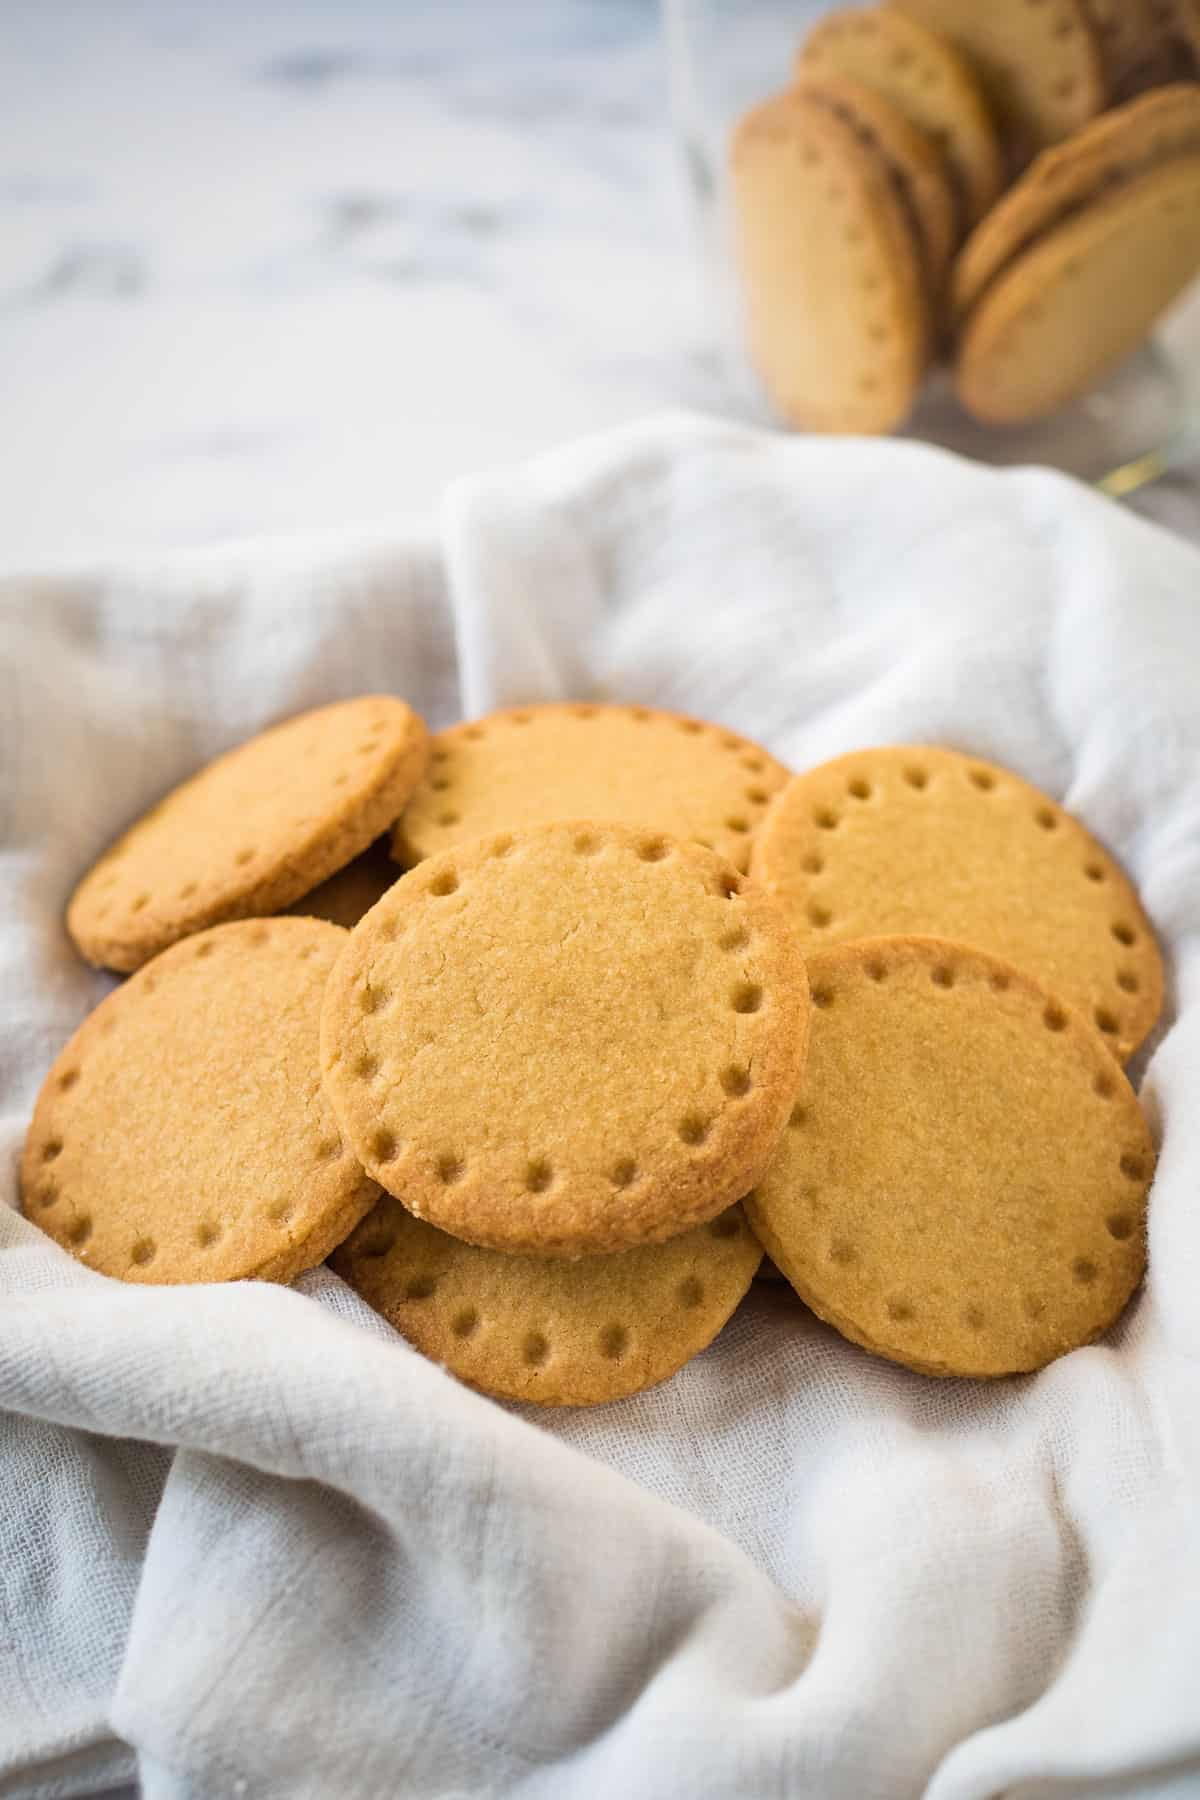 Round cookies on a cloth lined basket